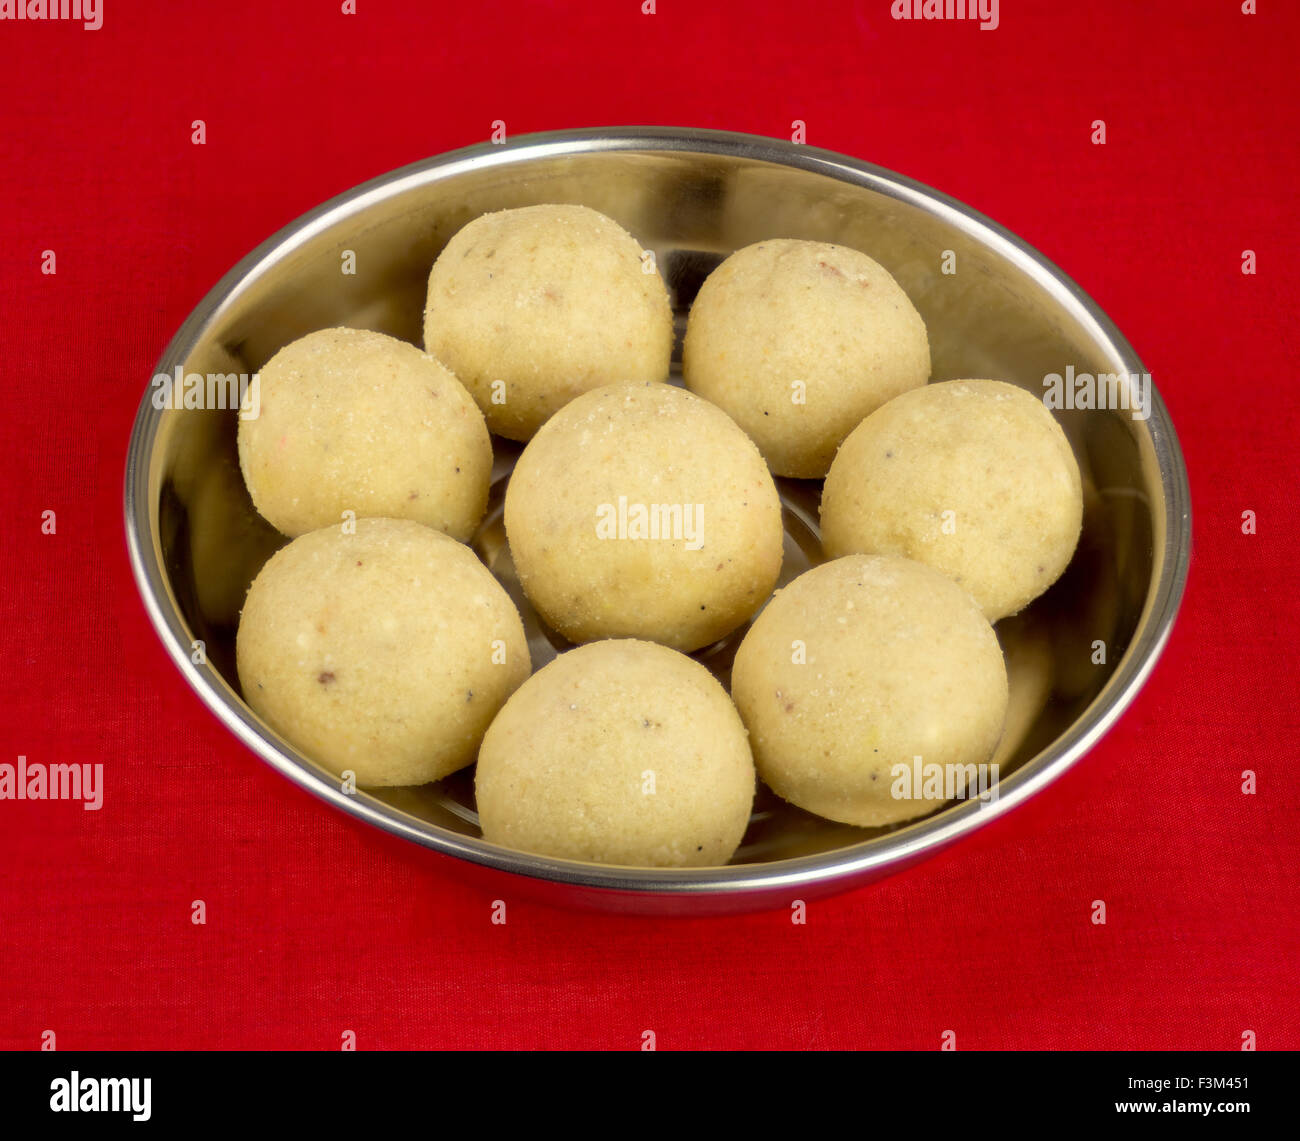 Indian Laddoo Laddu Sweets Served On Silver Plate Sitting On A Red Stock Photo Alamy